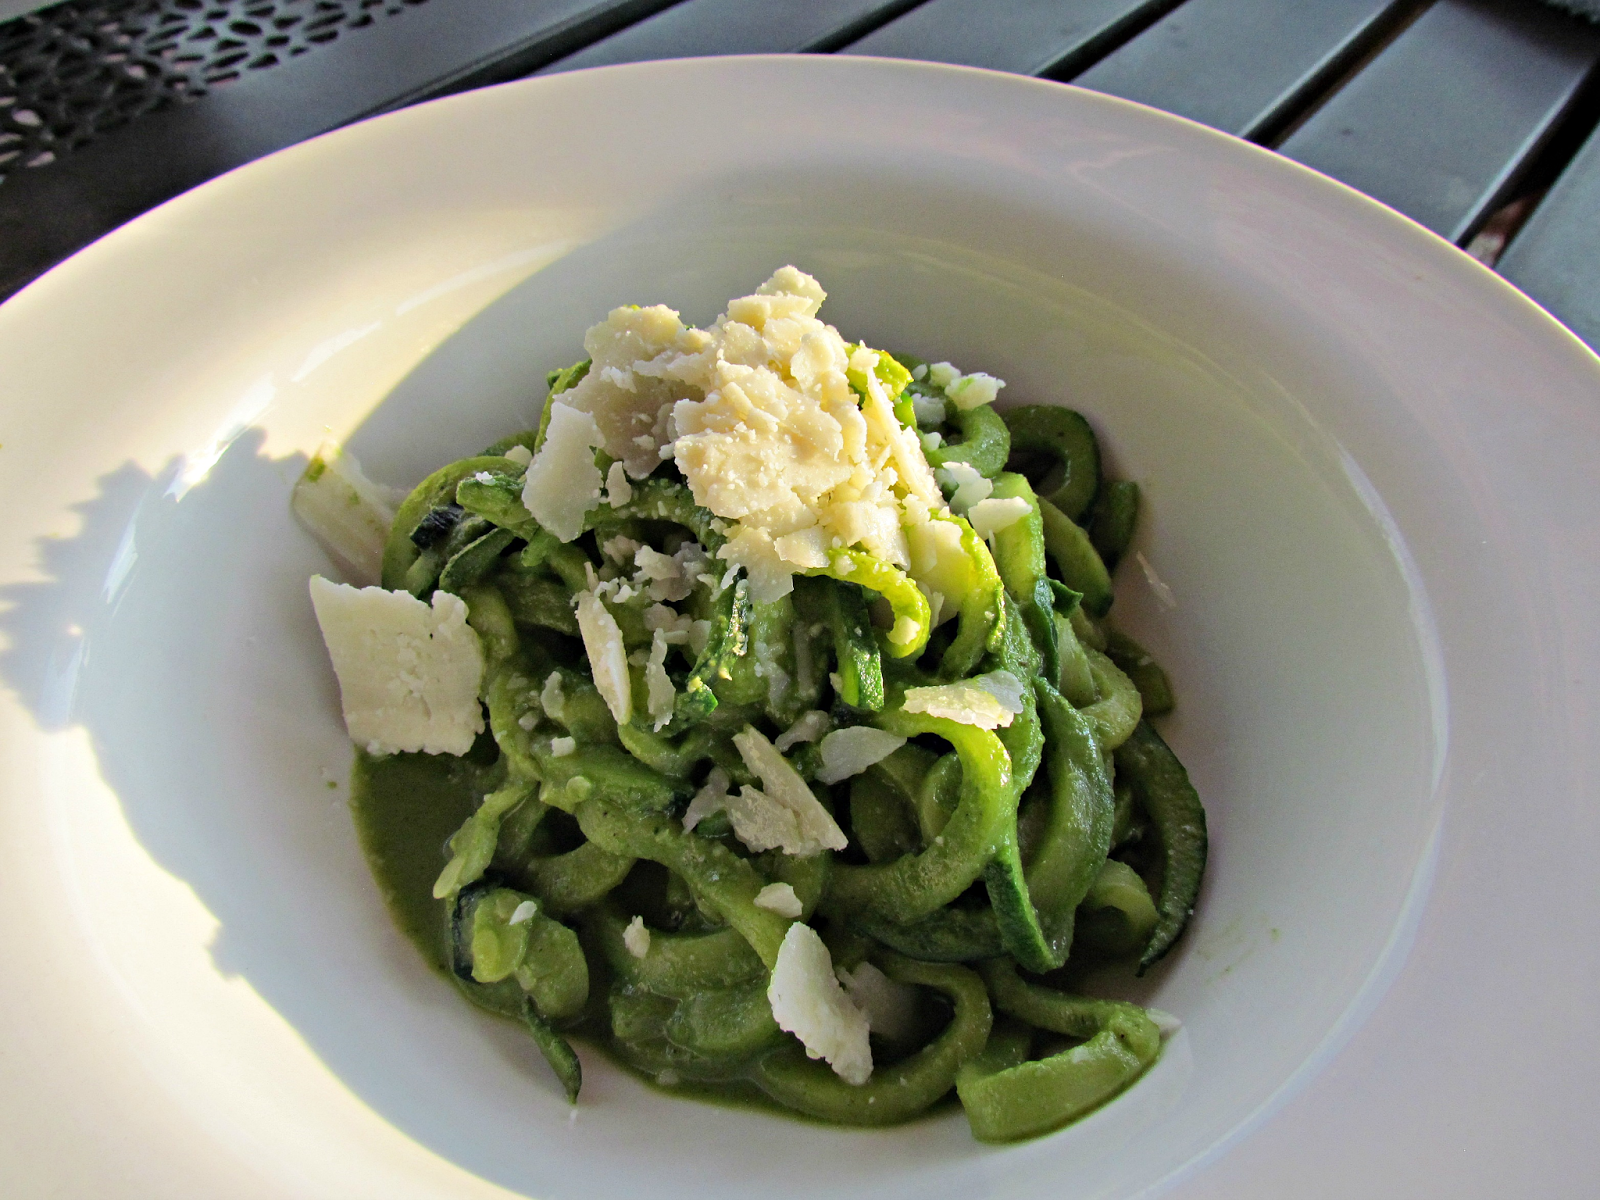 """Sparkle, Sweat, and Juice: Spiralized Zucchini """"Noodles"""" with Kale-Pesto Green Smoothie Sauce"""